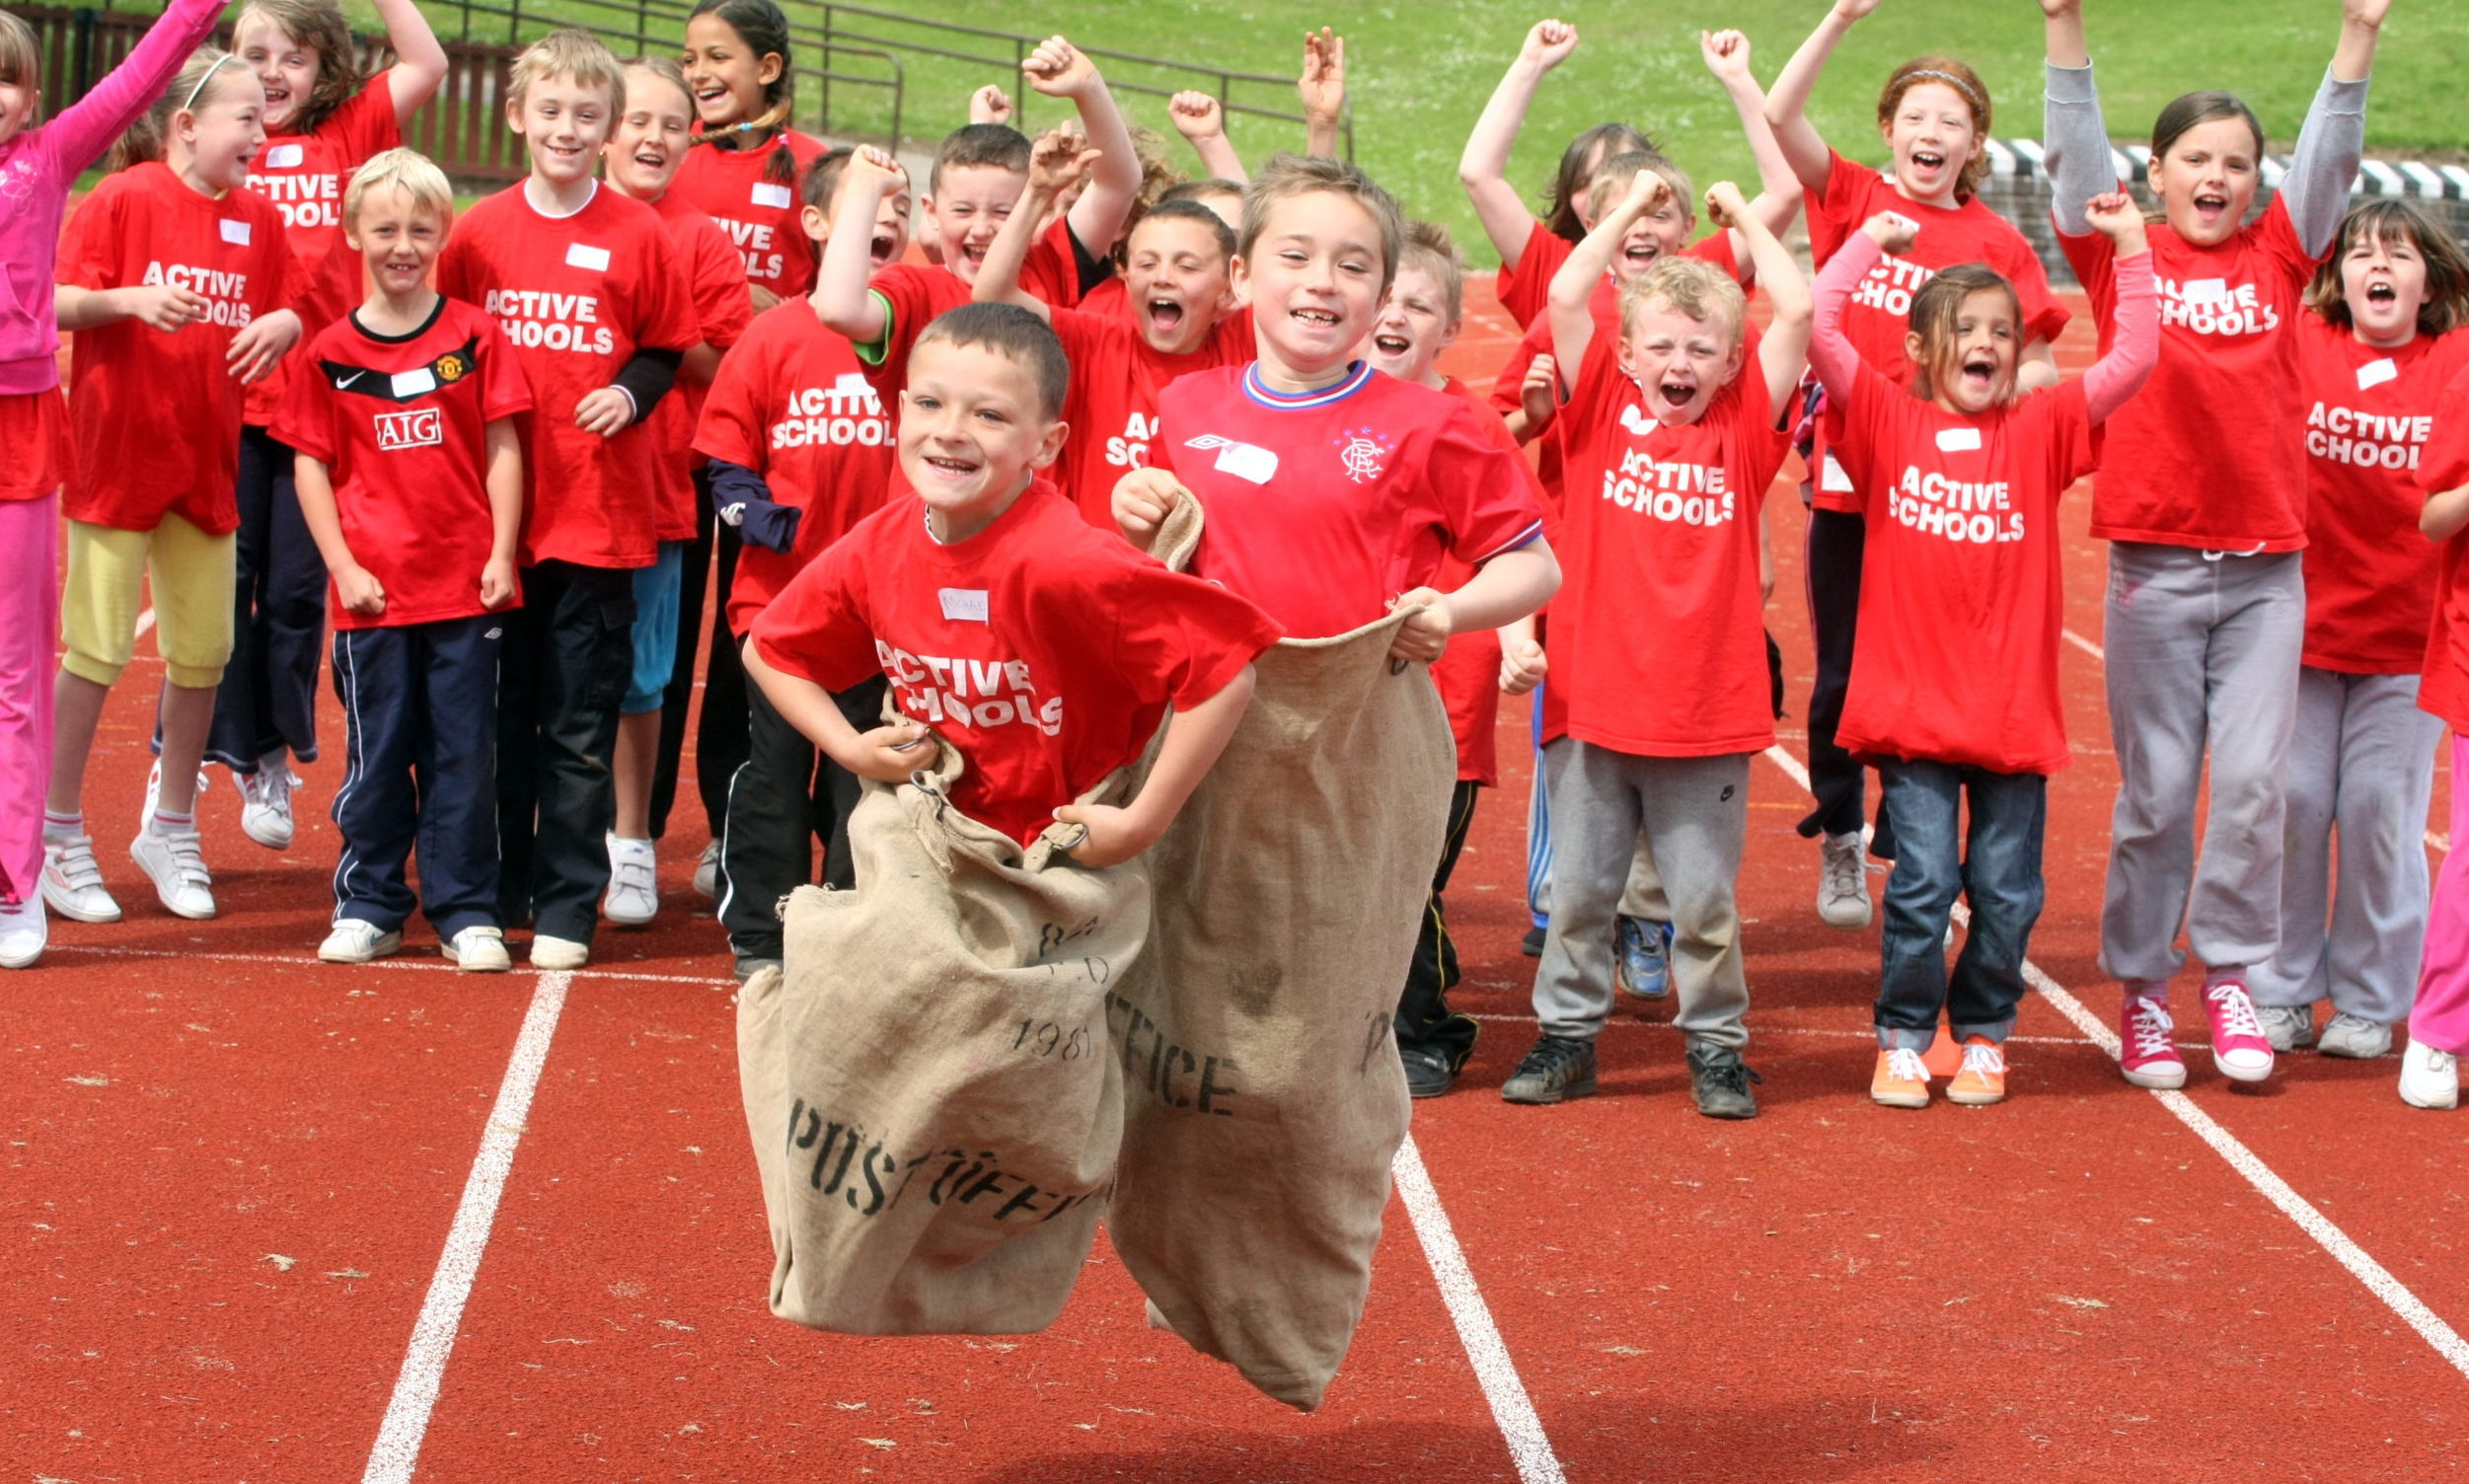 Primary School mini Highland games at Caird Park, Dundee - Baldragon feeder schools of Downfield, Sidlawview and Ardler PS  with Michael Gillan of Ardler Primary School and Mark Bertinshaw of Downfield during a sack race